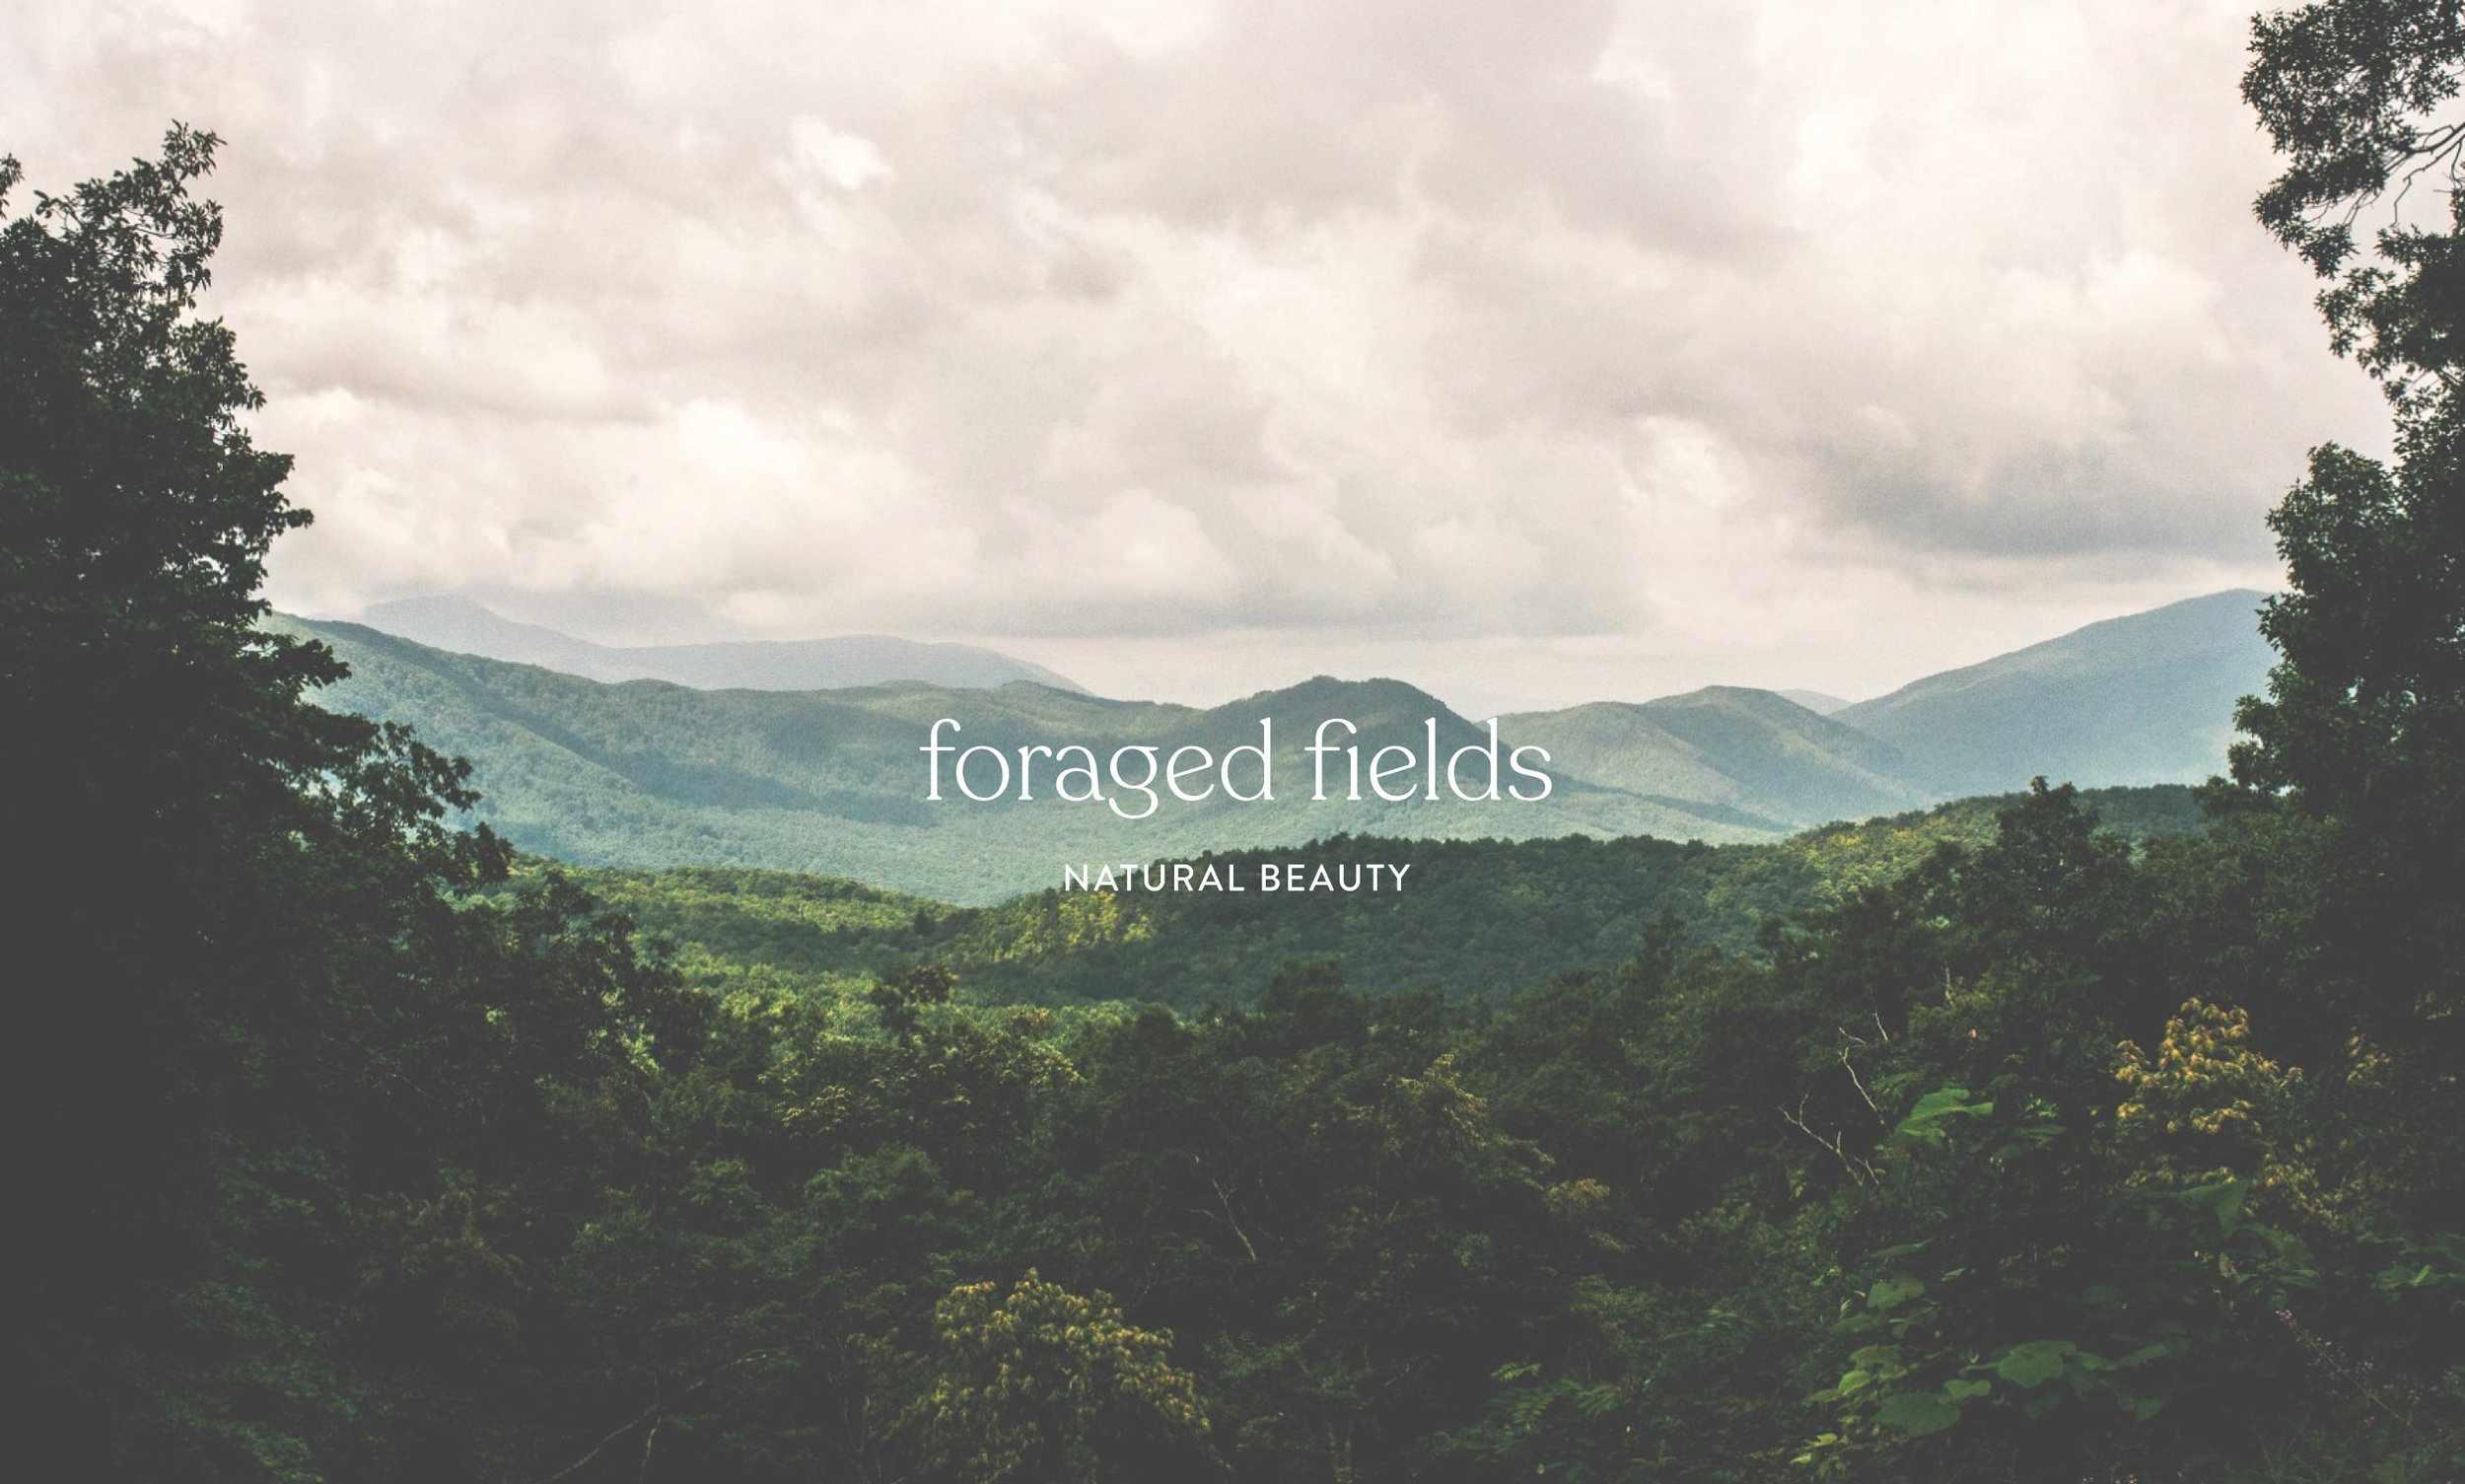 Foraged Fields Cover Image.jpg